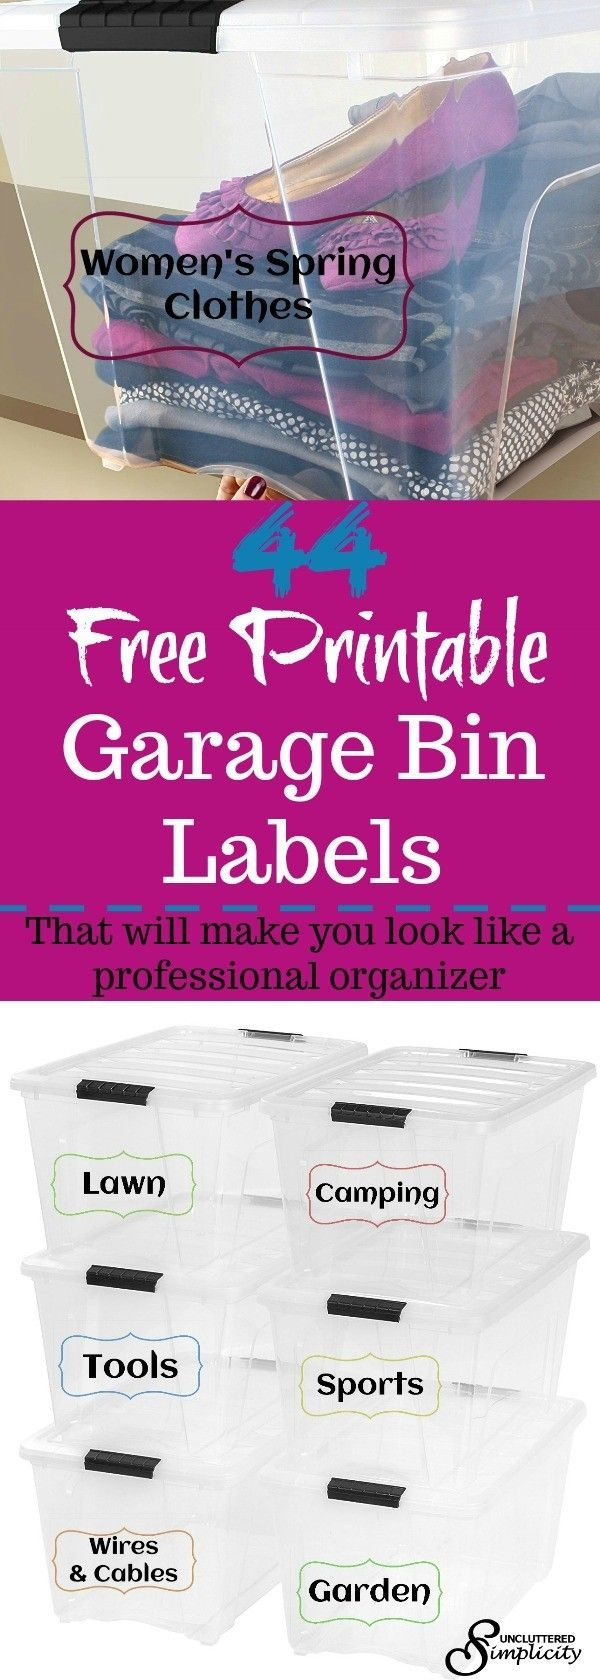 Free Printable Garage Bin Labels That Will Make You Look Like A Pro - Free Printable Labels For Storage Bins